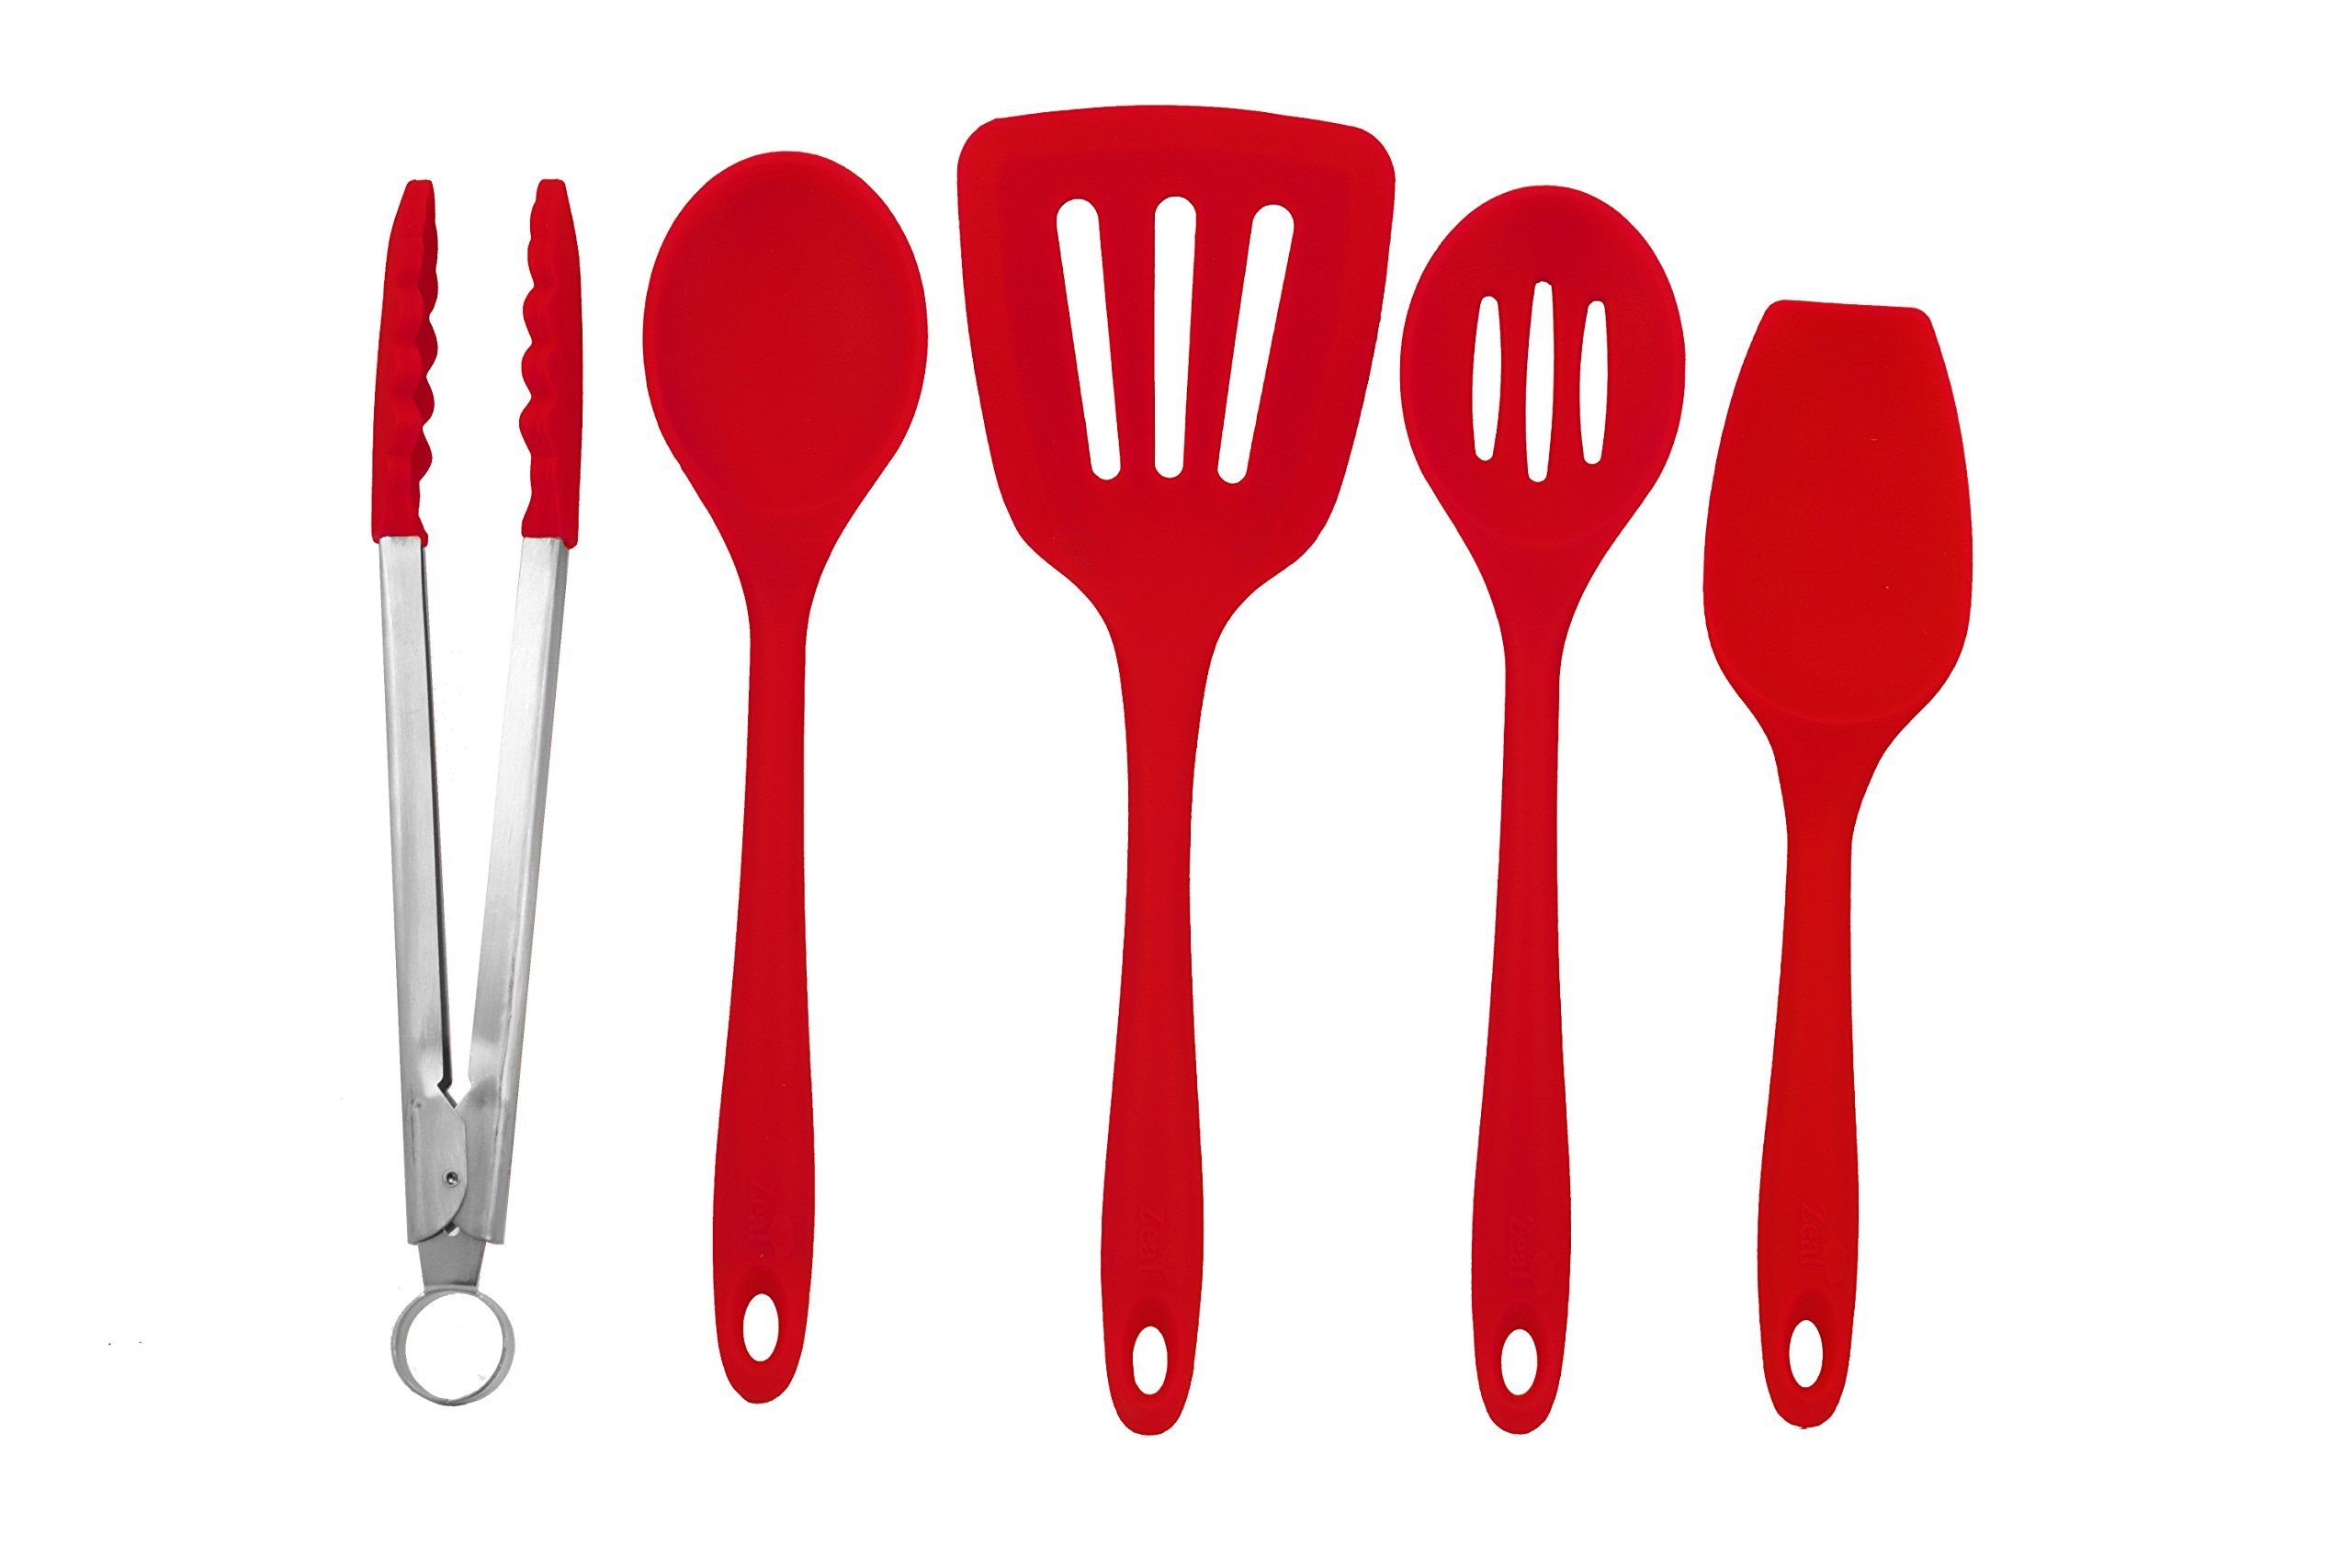 Zeal 5-piece Kitchen Utensil Set - Cooks Spoon, Turner, Scraper Spoon, Draining Spoon and Tong - European grade Pure Silicone, Heat Resistant to 482F (Red)